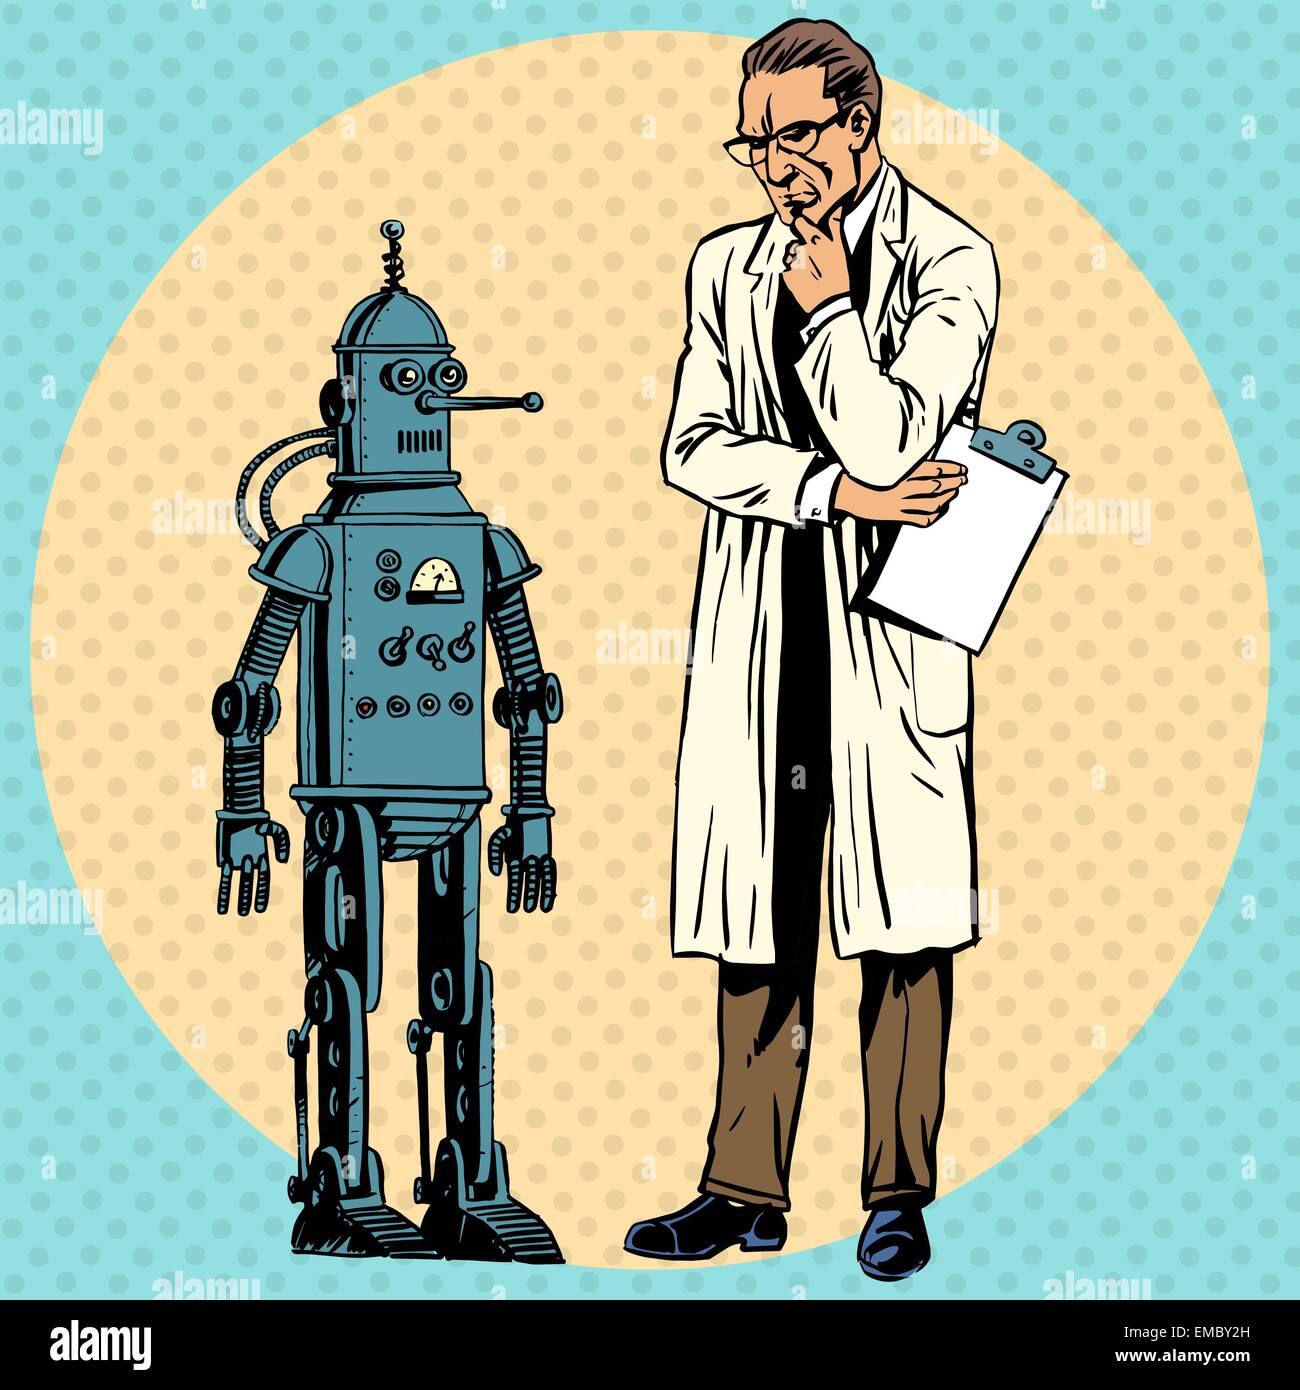 professor scientist and a robot the creator and gadget